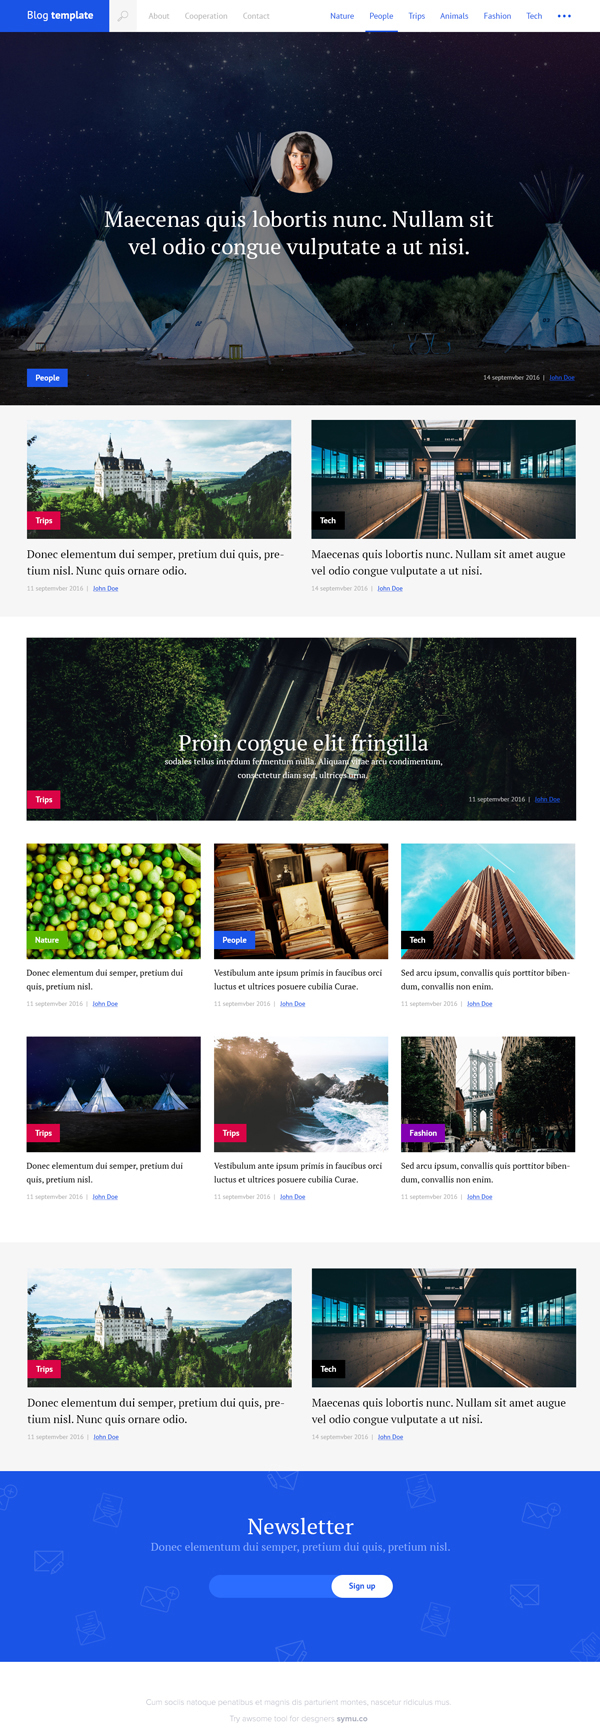 Free Blog PSD Template